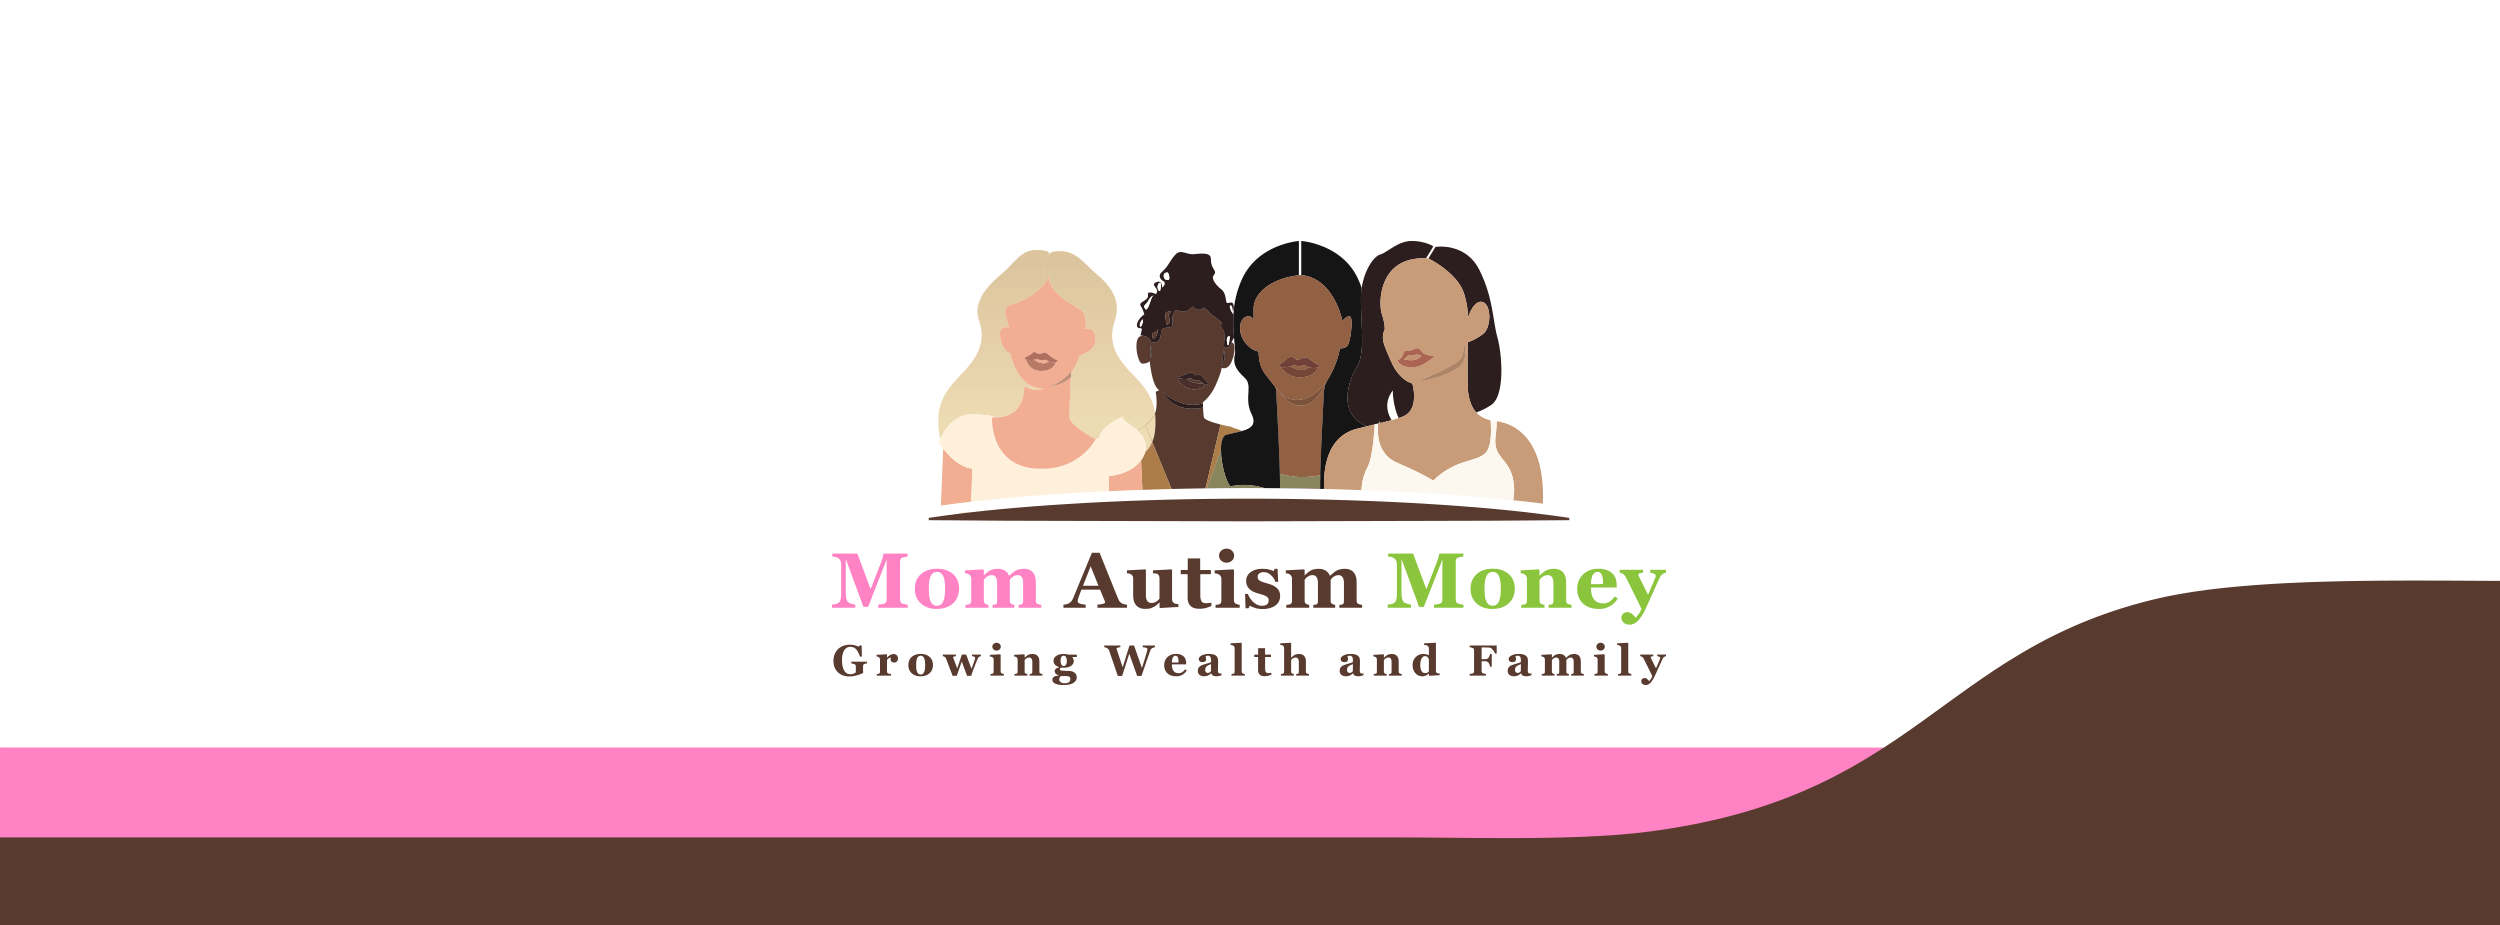 Silohette art of a group of women. Beneath reads 'Mom Autism Money: Growing Wealth and Family'